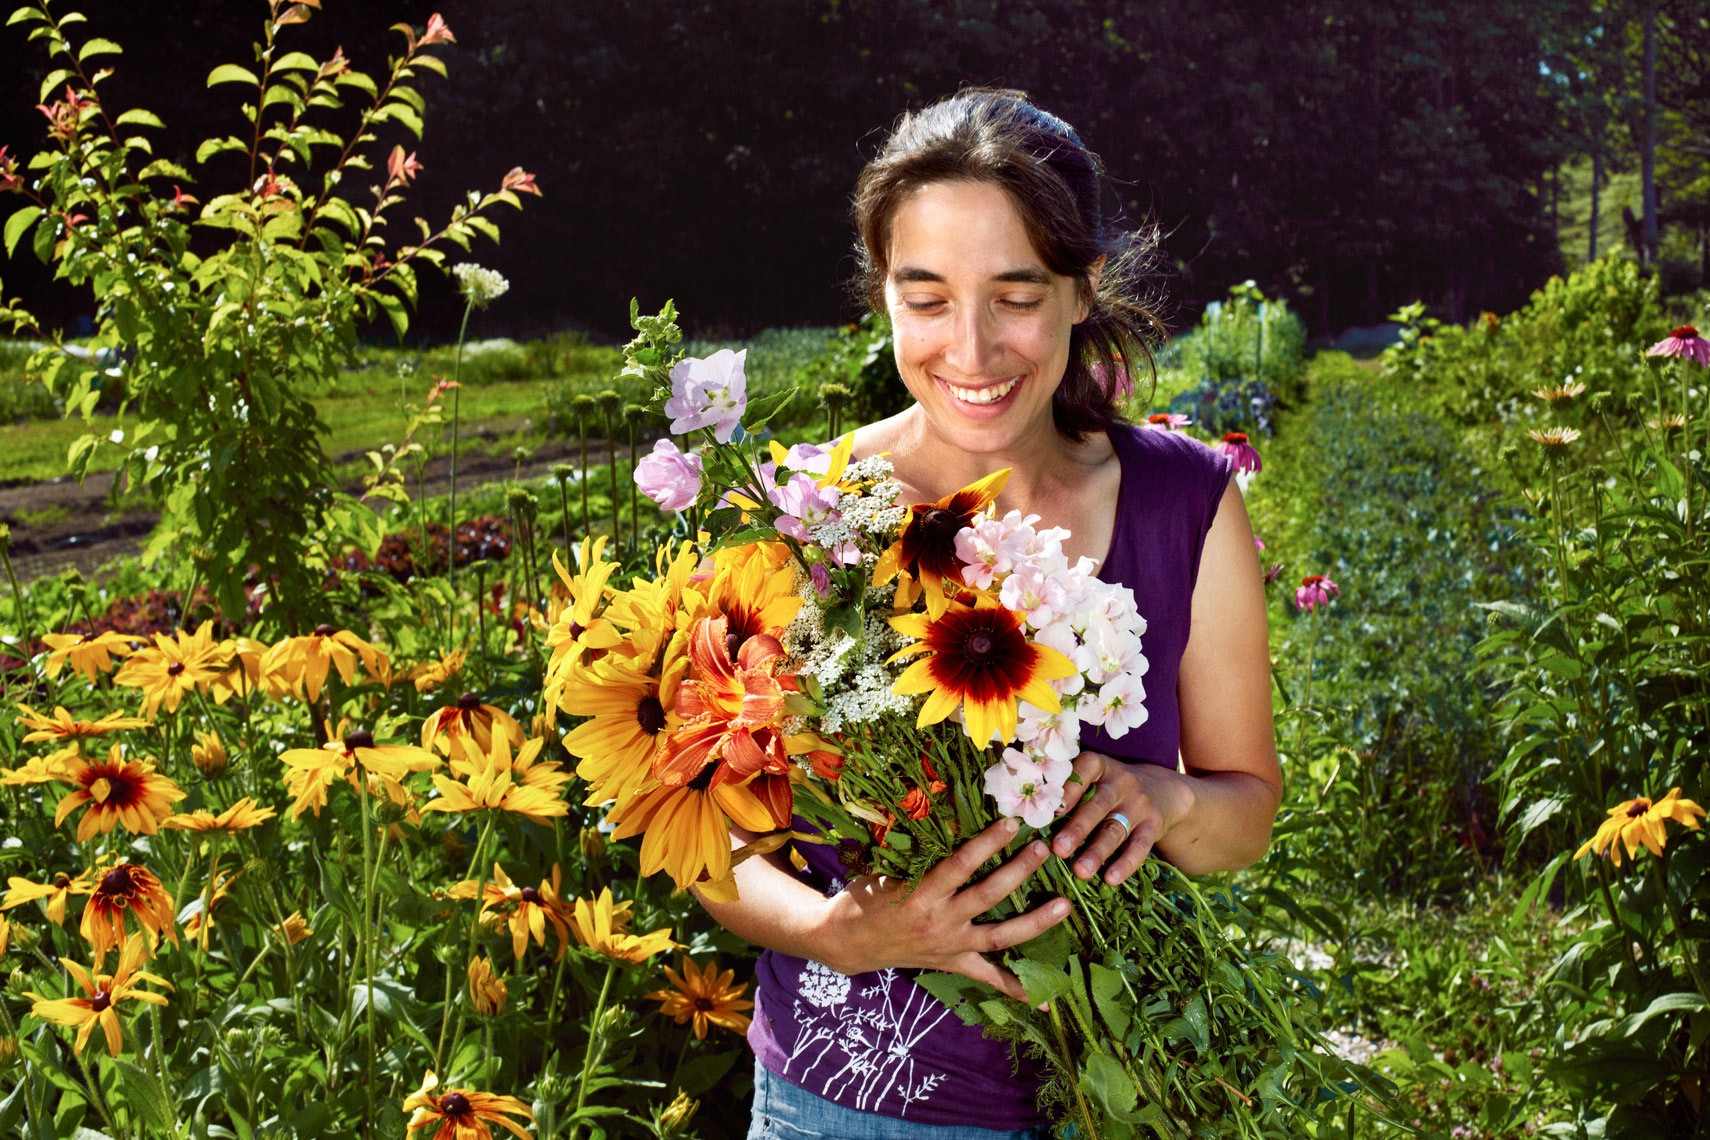 Flora Brown, flower farmer-florist, farm stand manager, behind-the-scenes person.